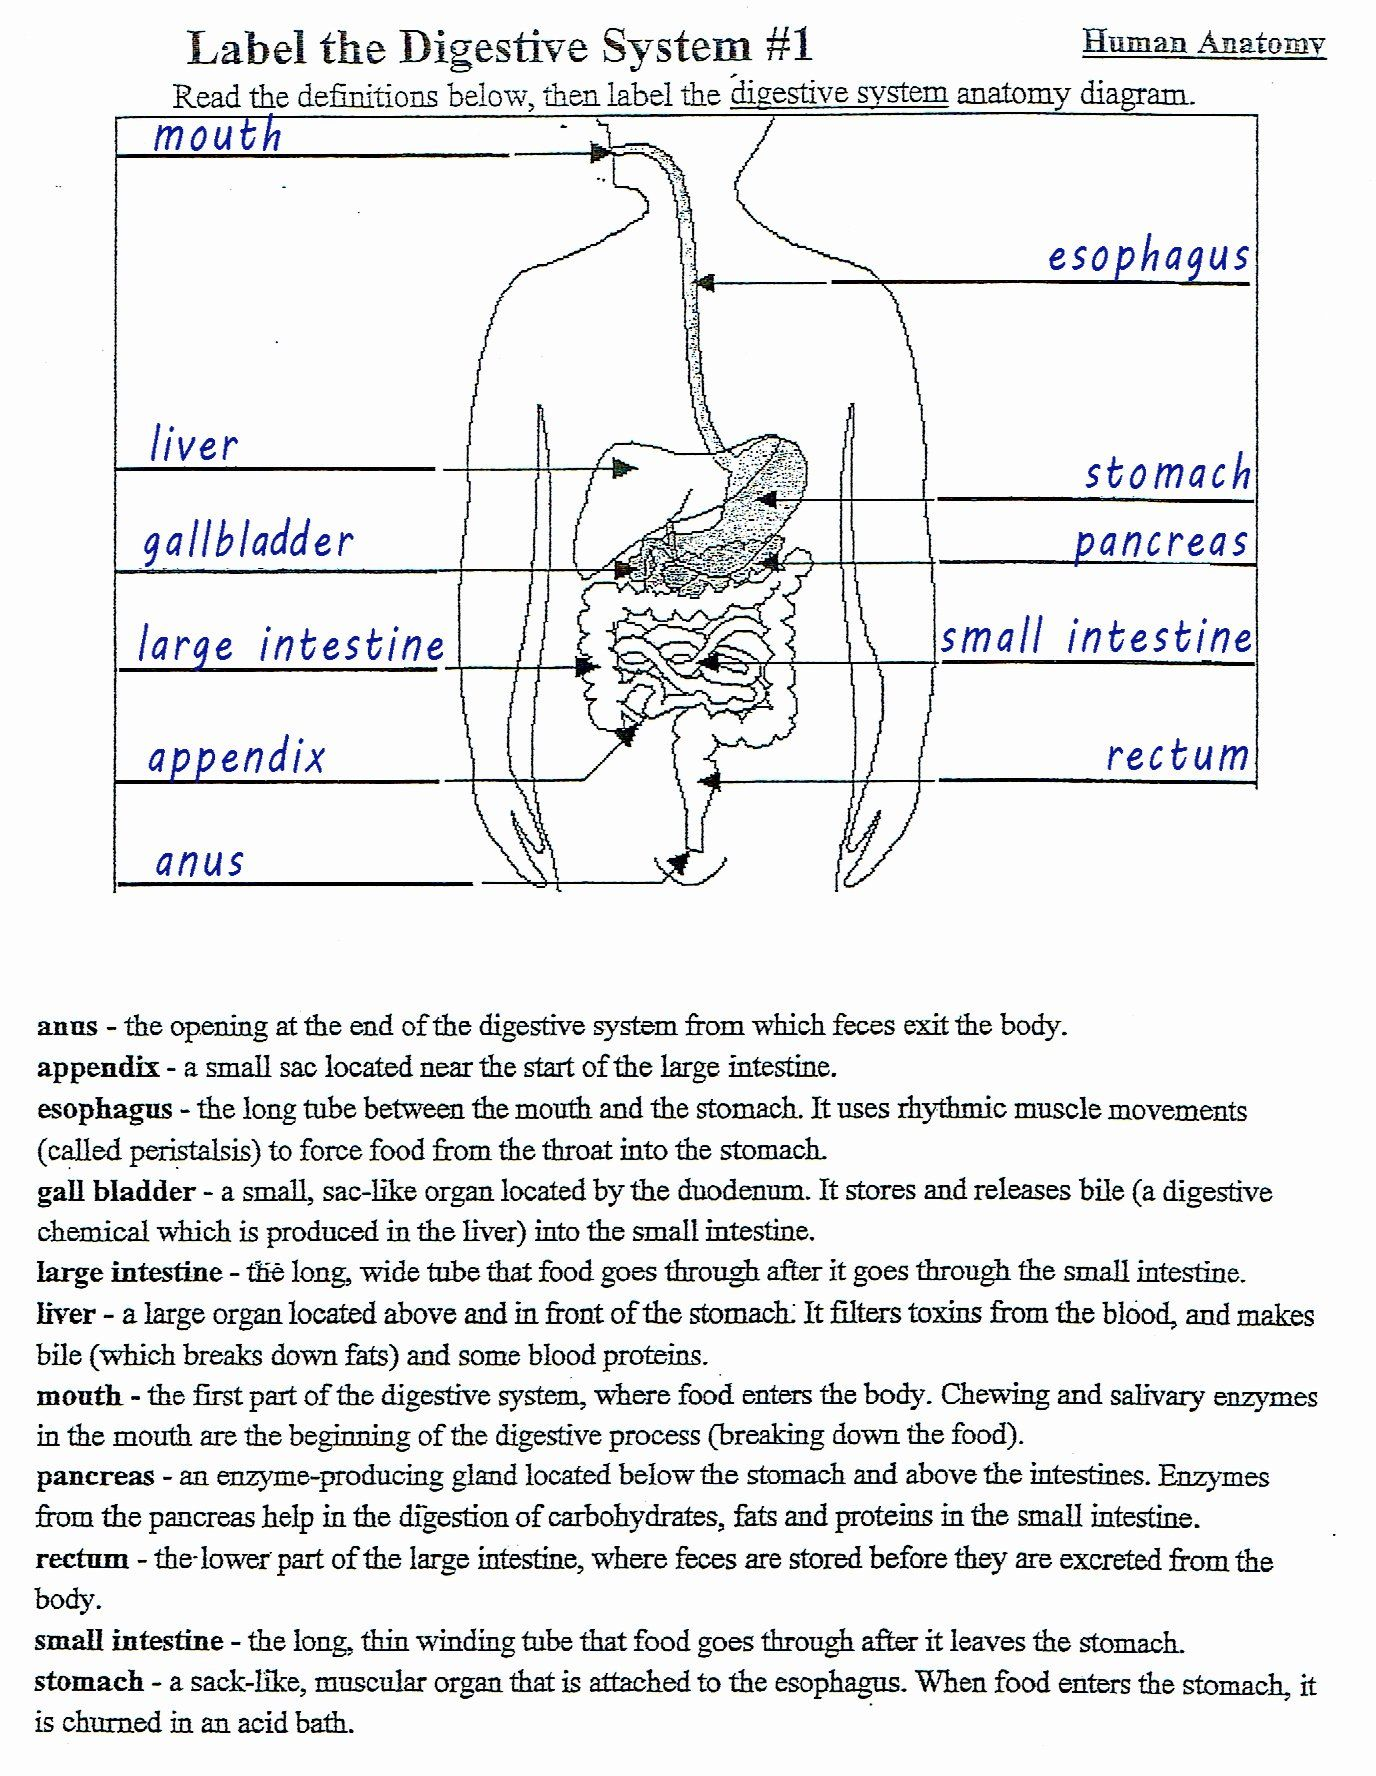 Kidney Structure And Function Worksheet Answers Key